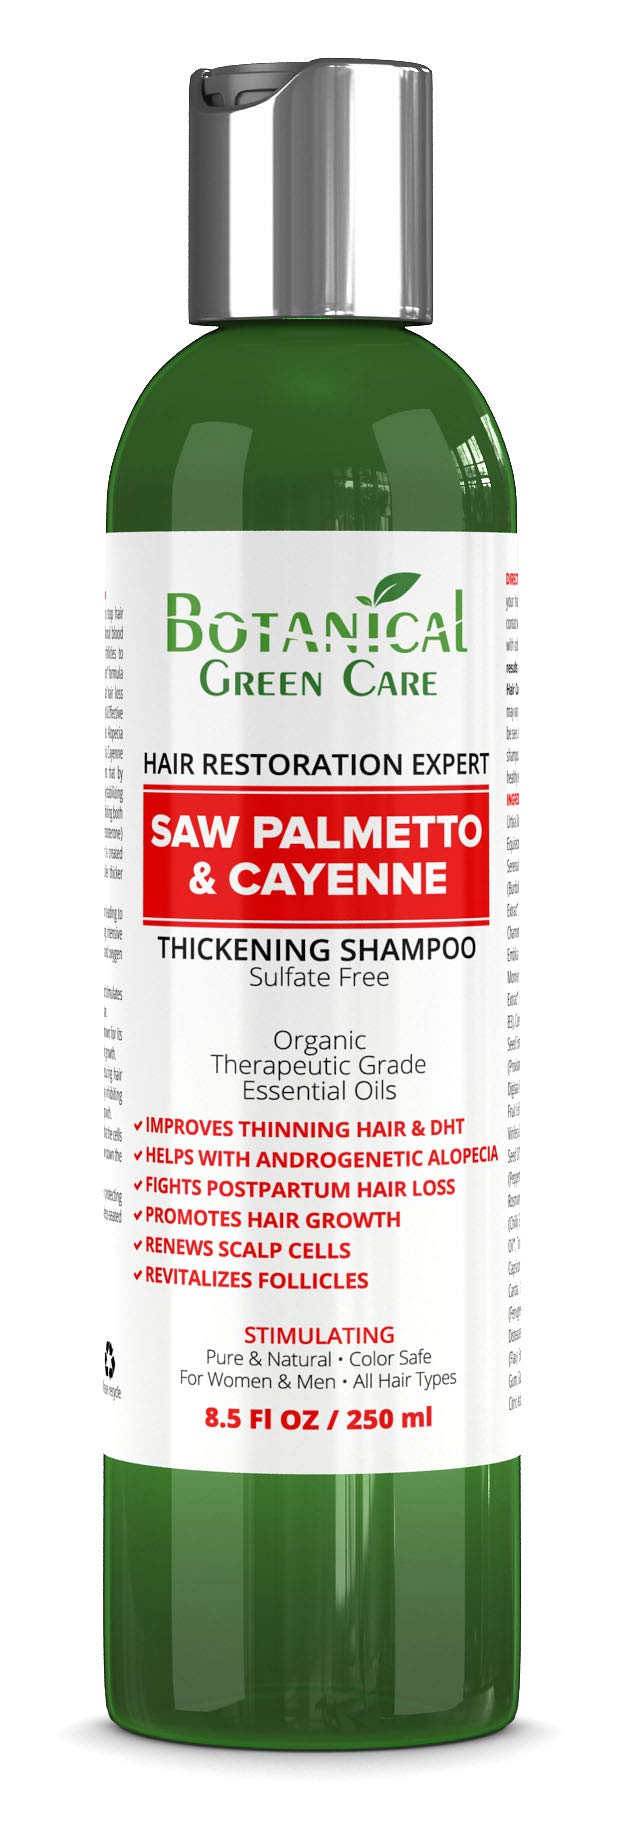 Hair Growth/Anti - Hair Loss Sulfate-Free SHAMPOO ''Saw Palmetto & Cayenne''. Alopecia Prevention and DHT Blocker. Doctor Developed. NEW 2018 FORMULA! by Botanical Green Care